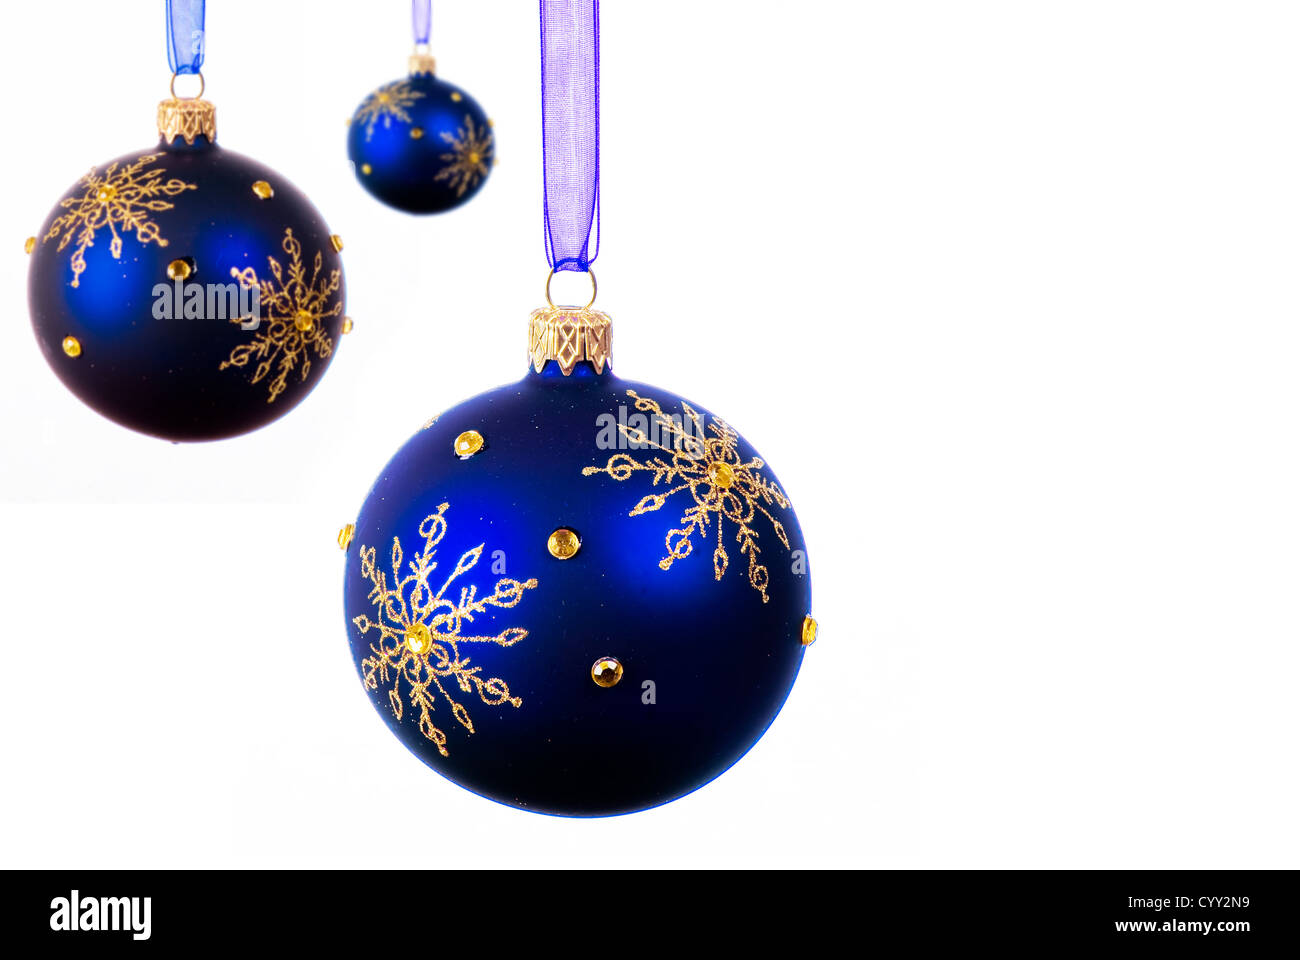 blue christmas balls over white background isolated stock image - Blue Christmas Balls